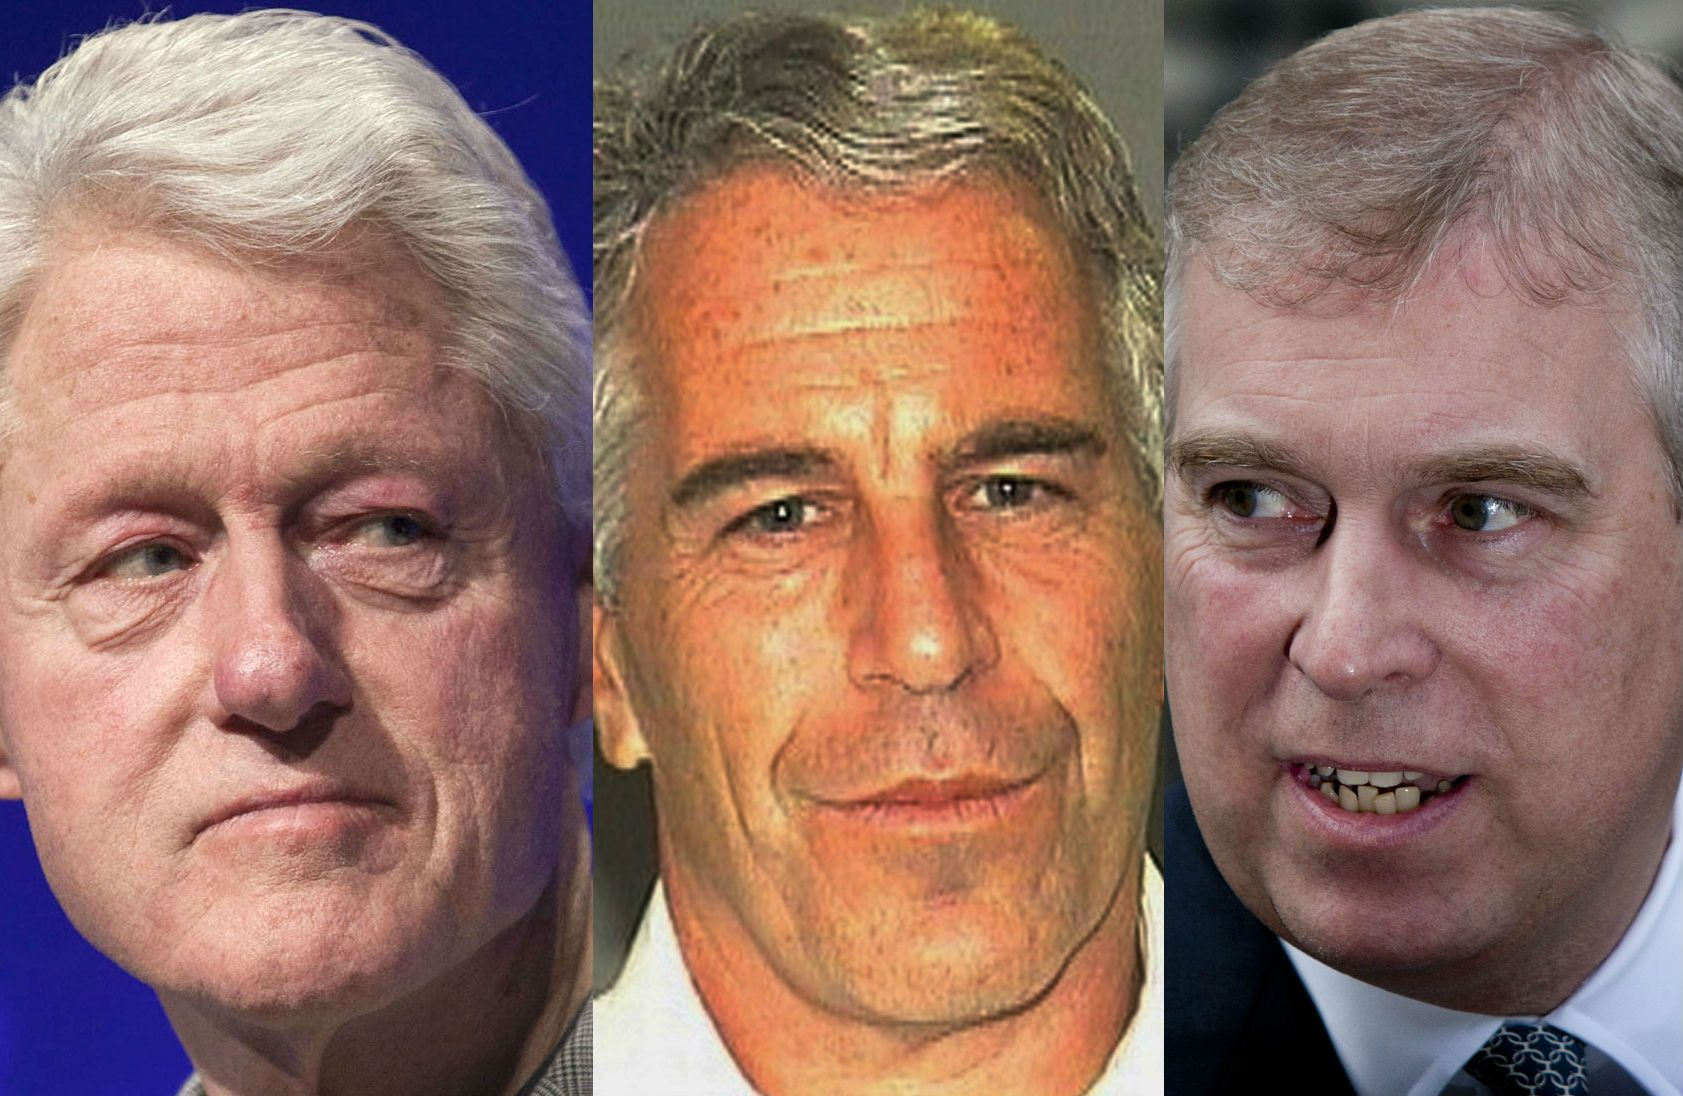 Jeffrey Epstein: The Sex Offender Who Mixes With Princes and Premiers